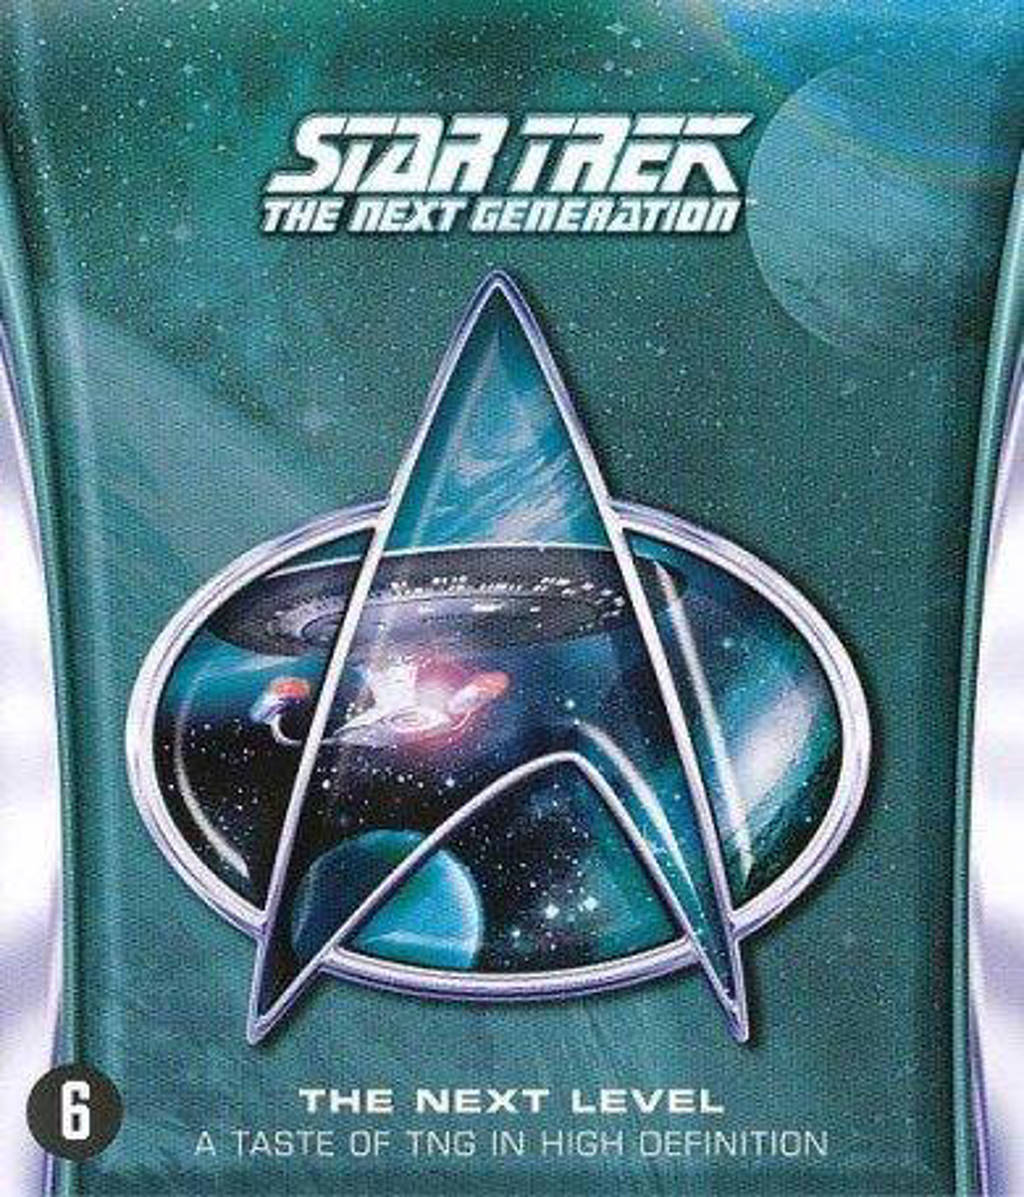 Star trek the next generation - The next level (Blu-ray)